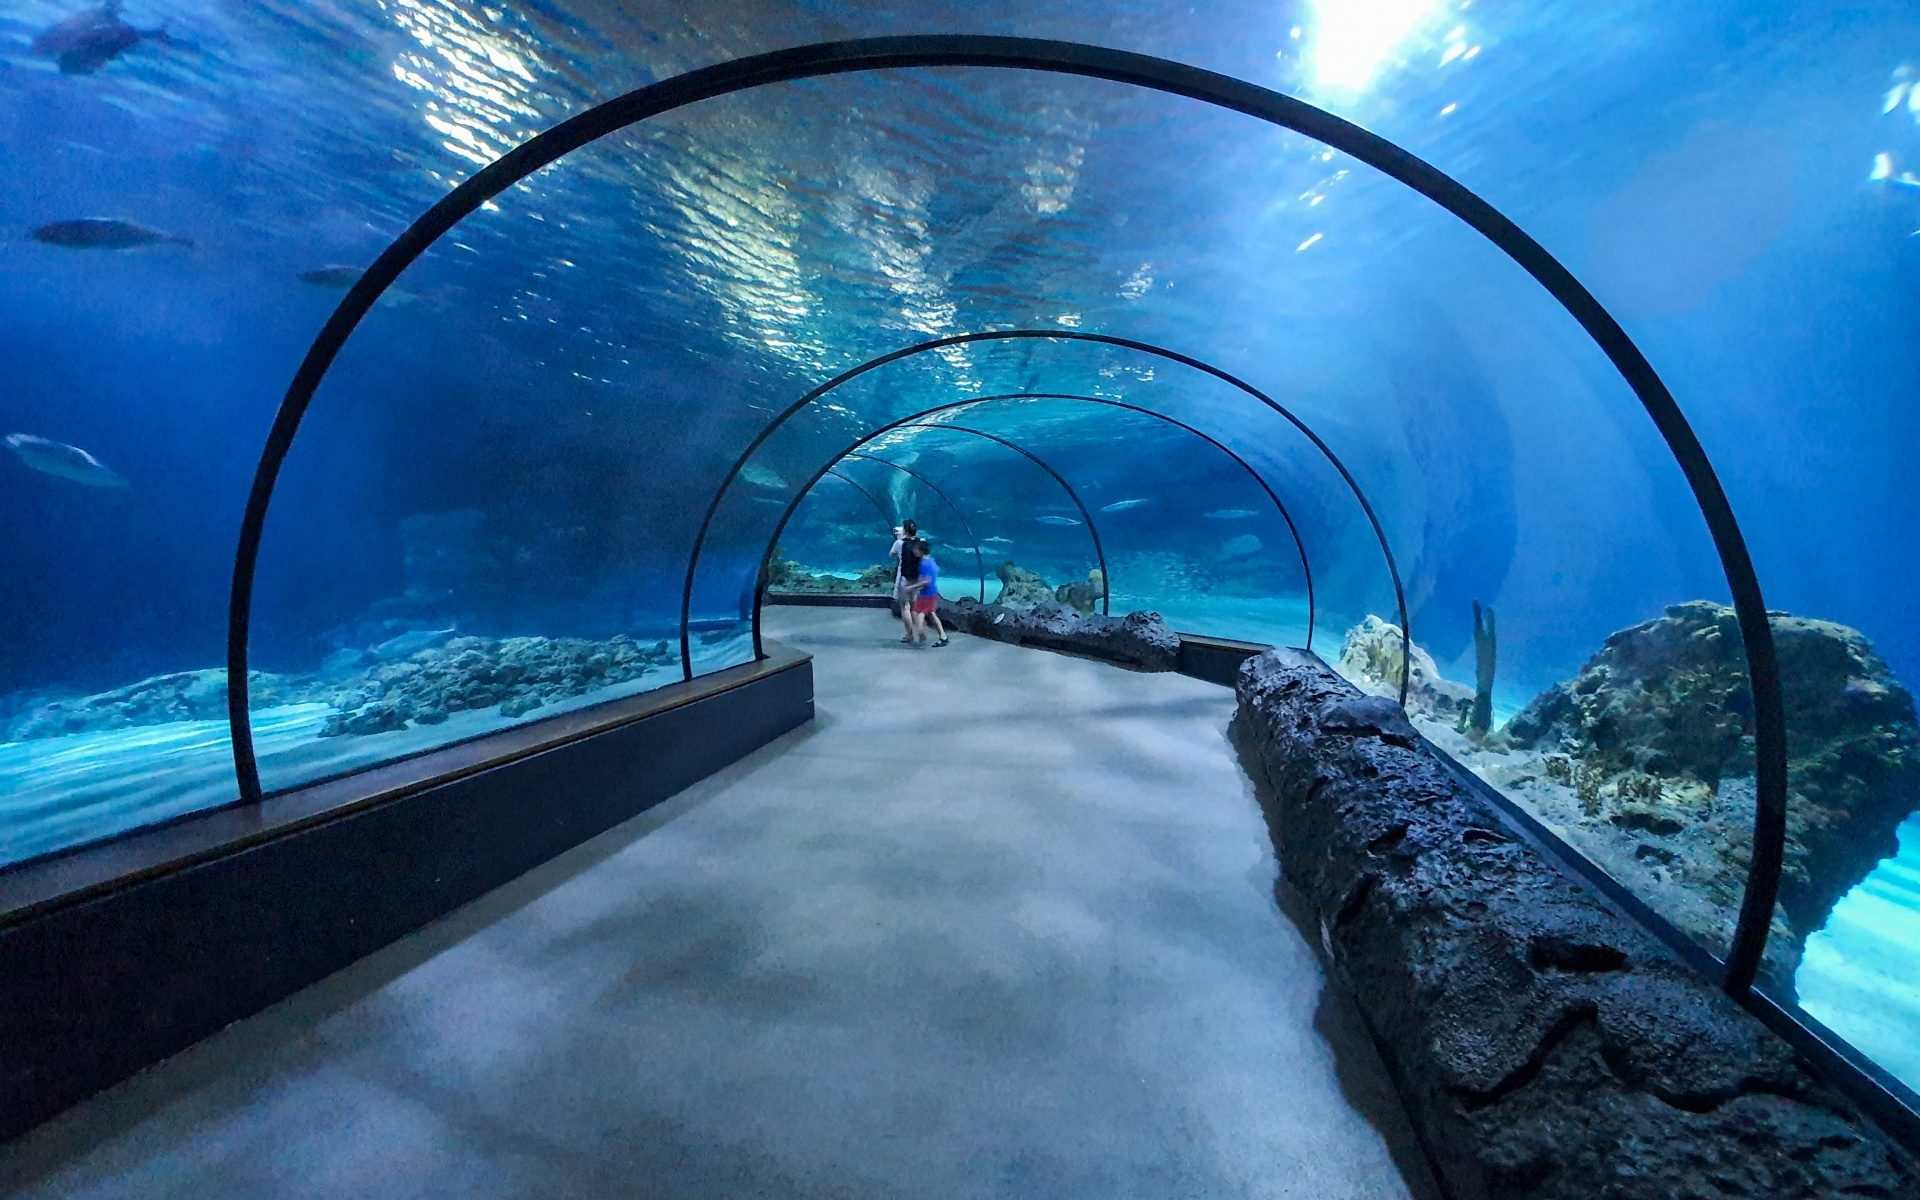 aquarium tunnel 1580137044LzJ edited 7 unexplored places in Chennai to surprise and wow you